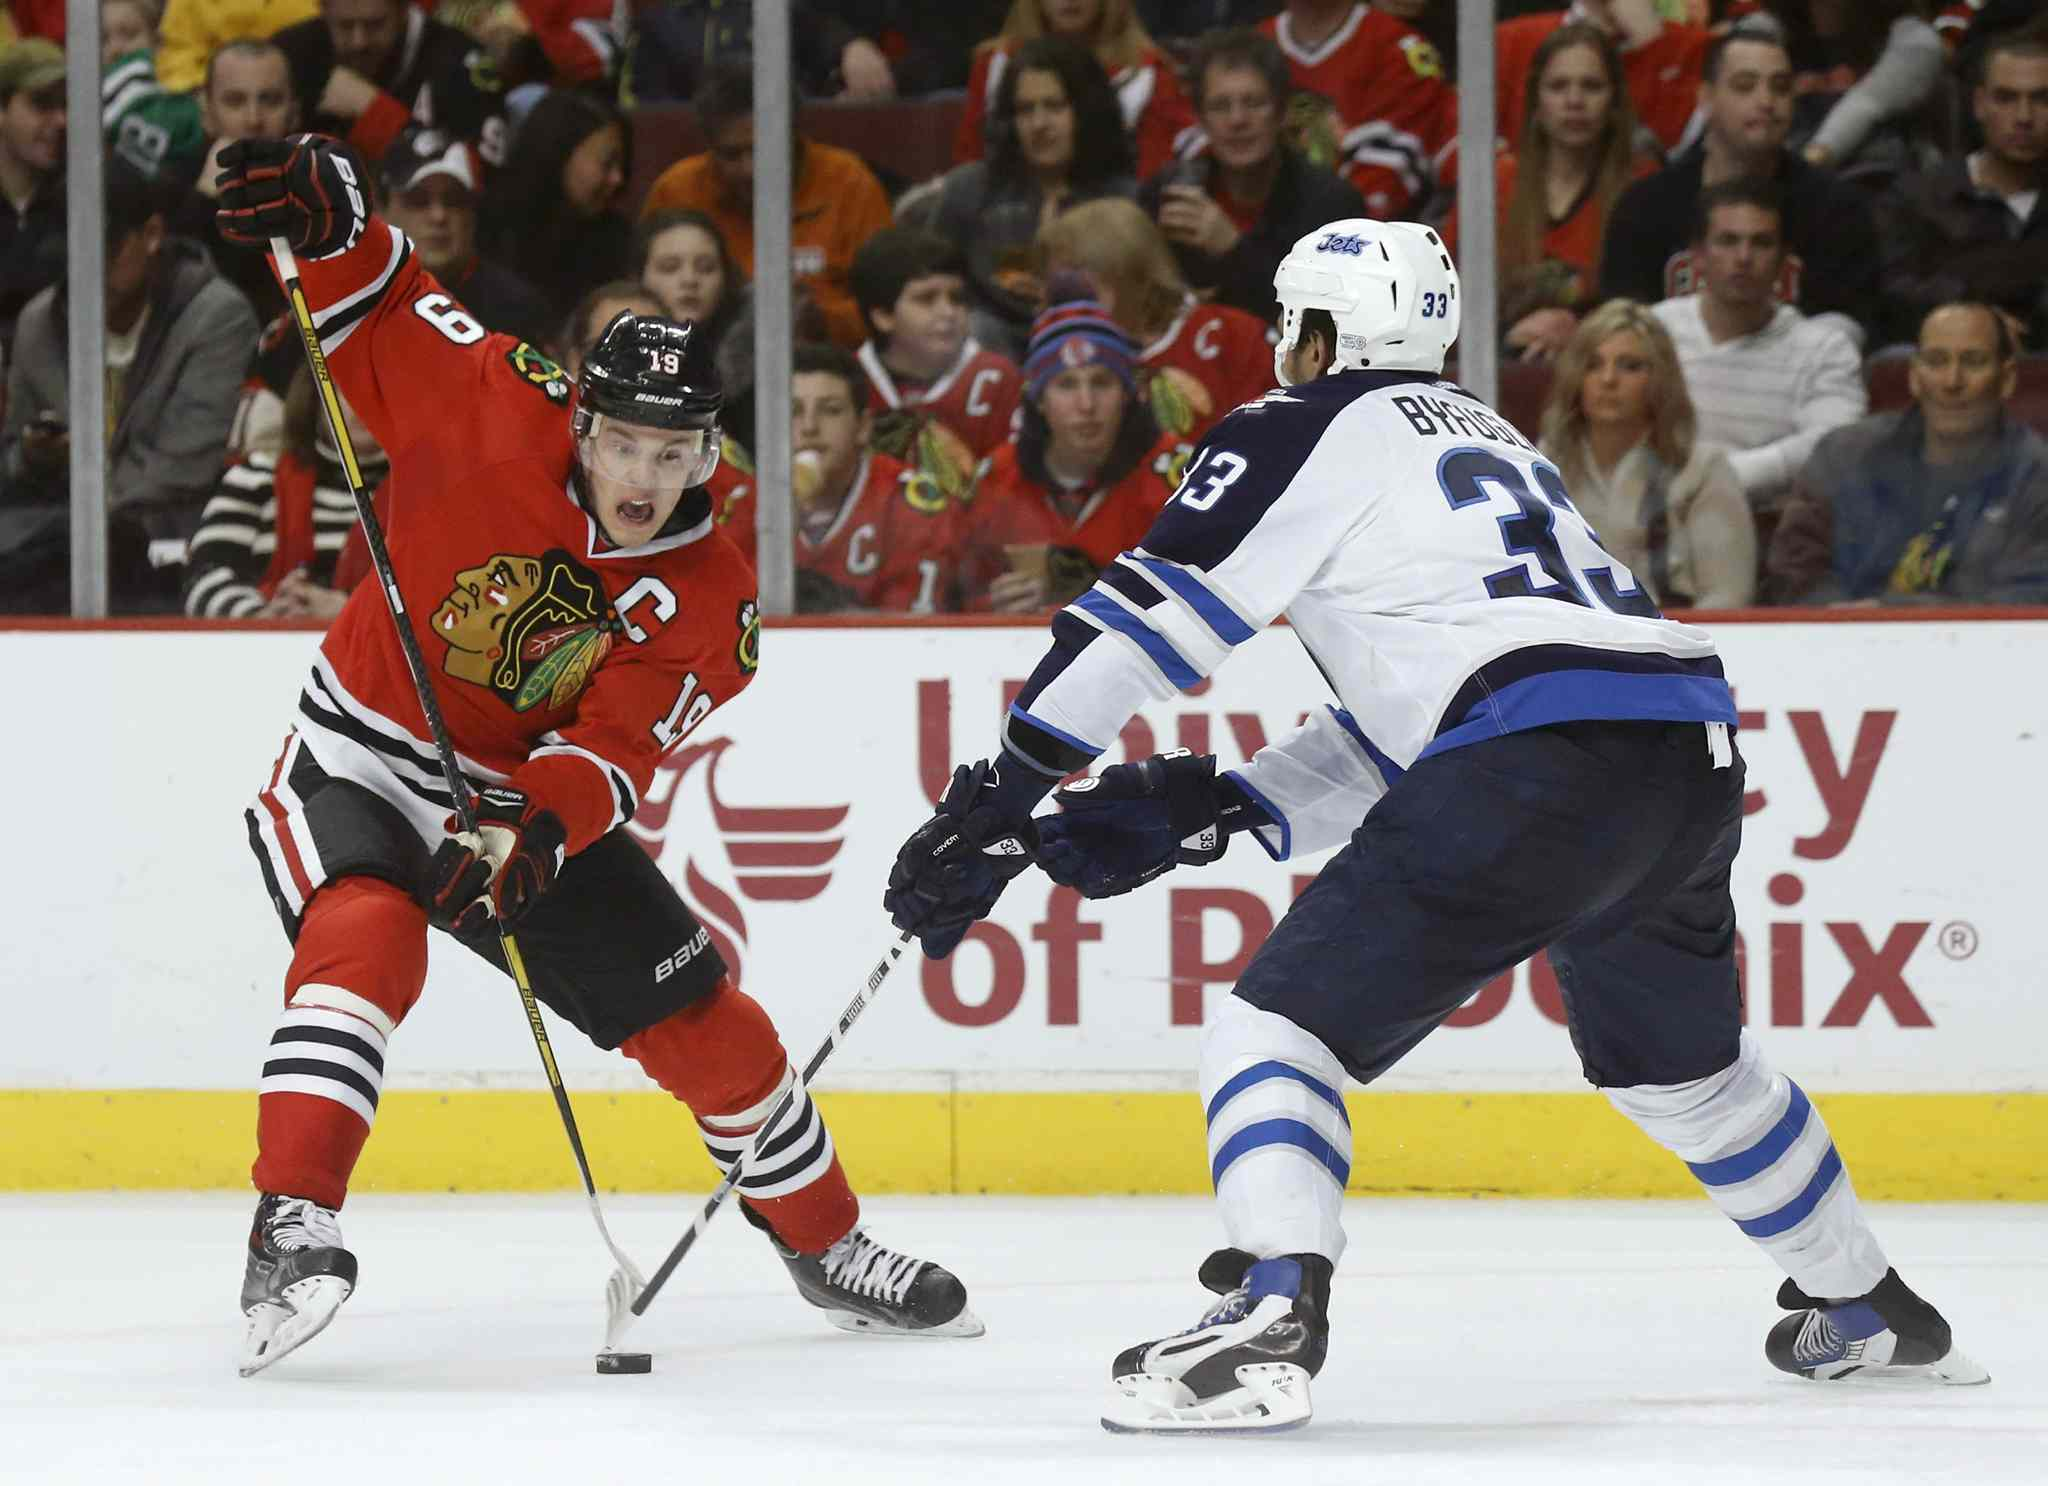 Blackhawks captain Jonathan Toews tries to dangle past the Jets' Dustin Byfuglien.